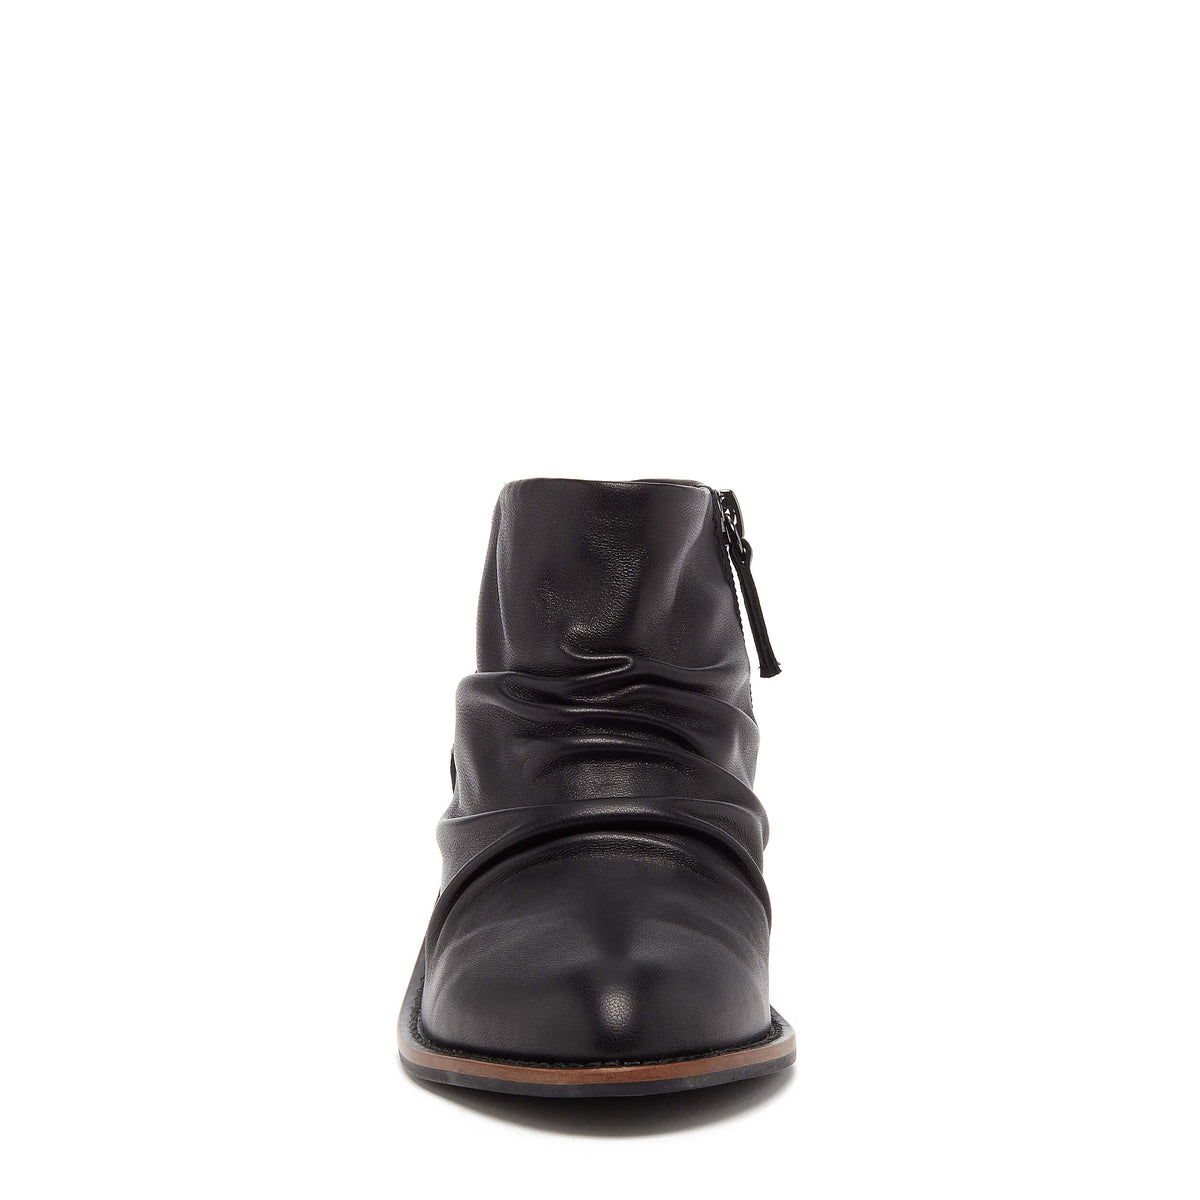 Kelsi Dagger BK® Kiri Black Leather Bootie